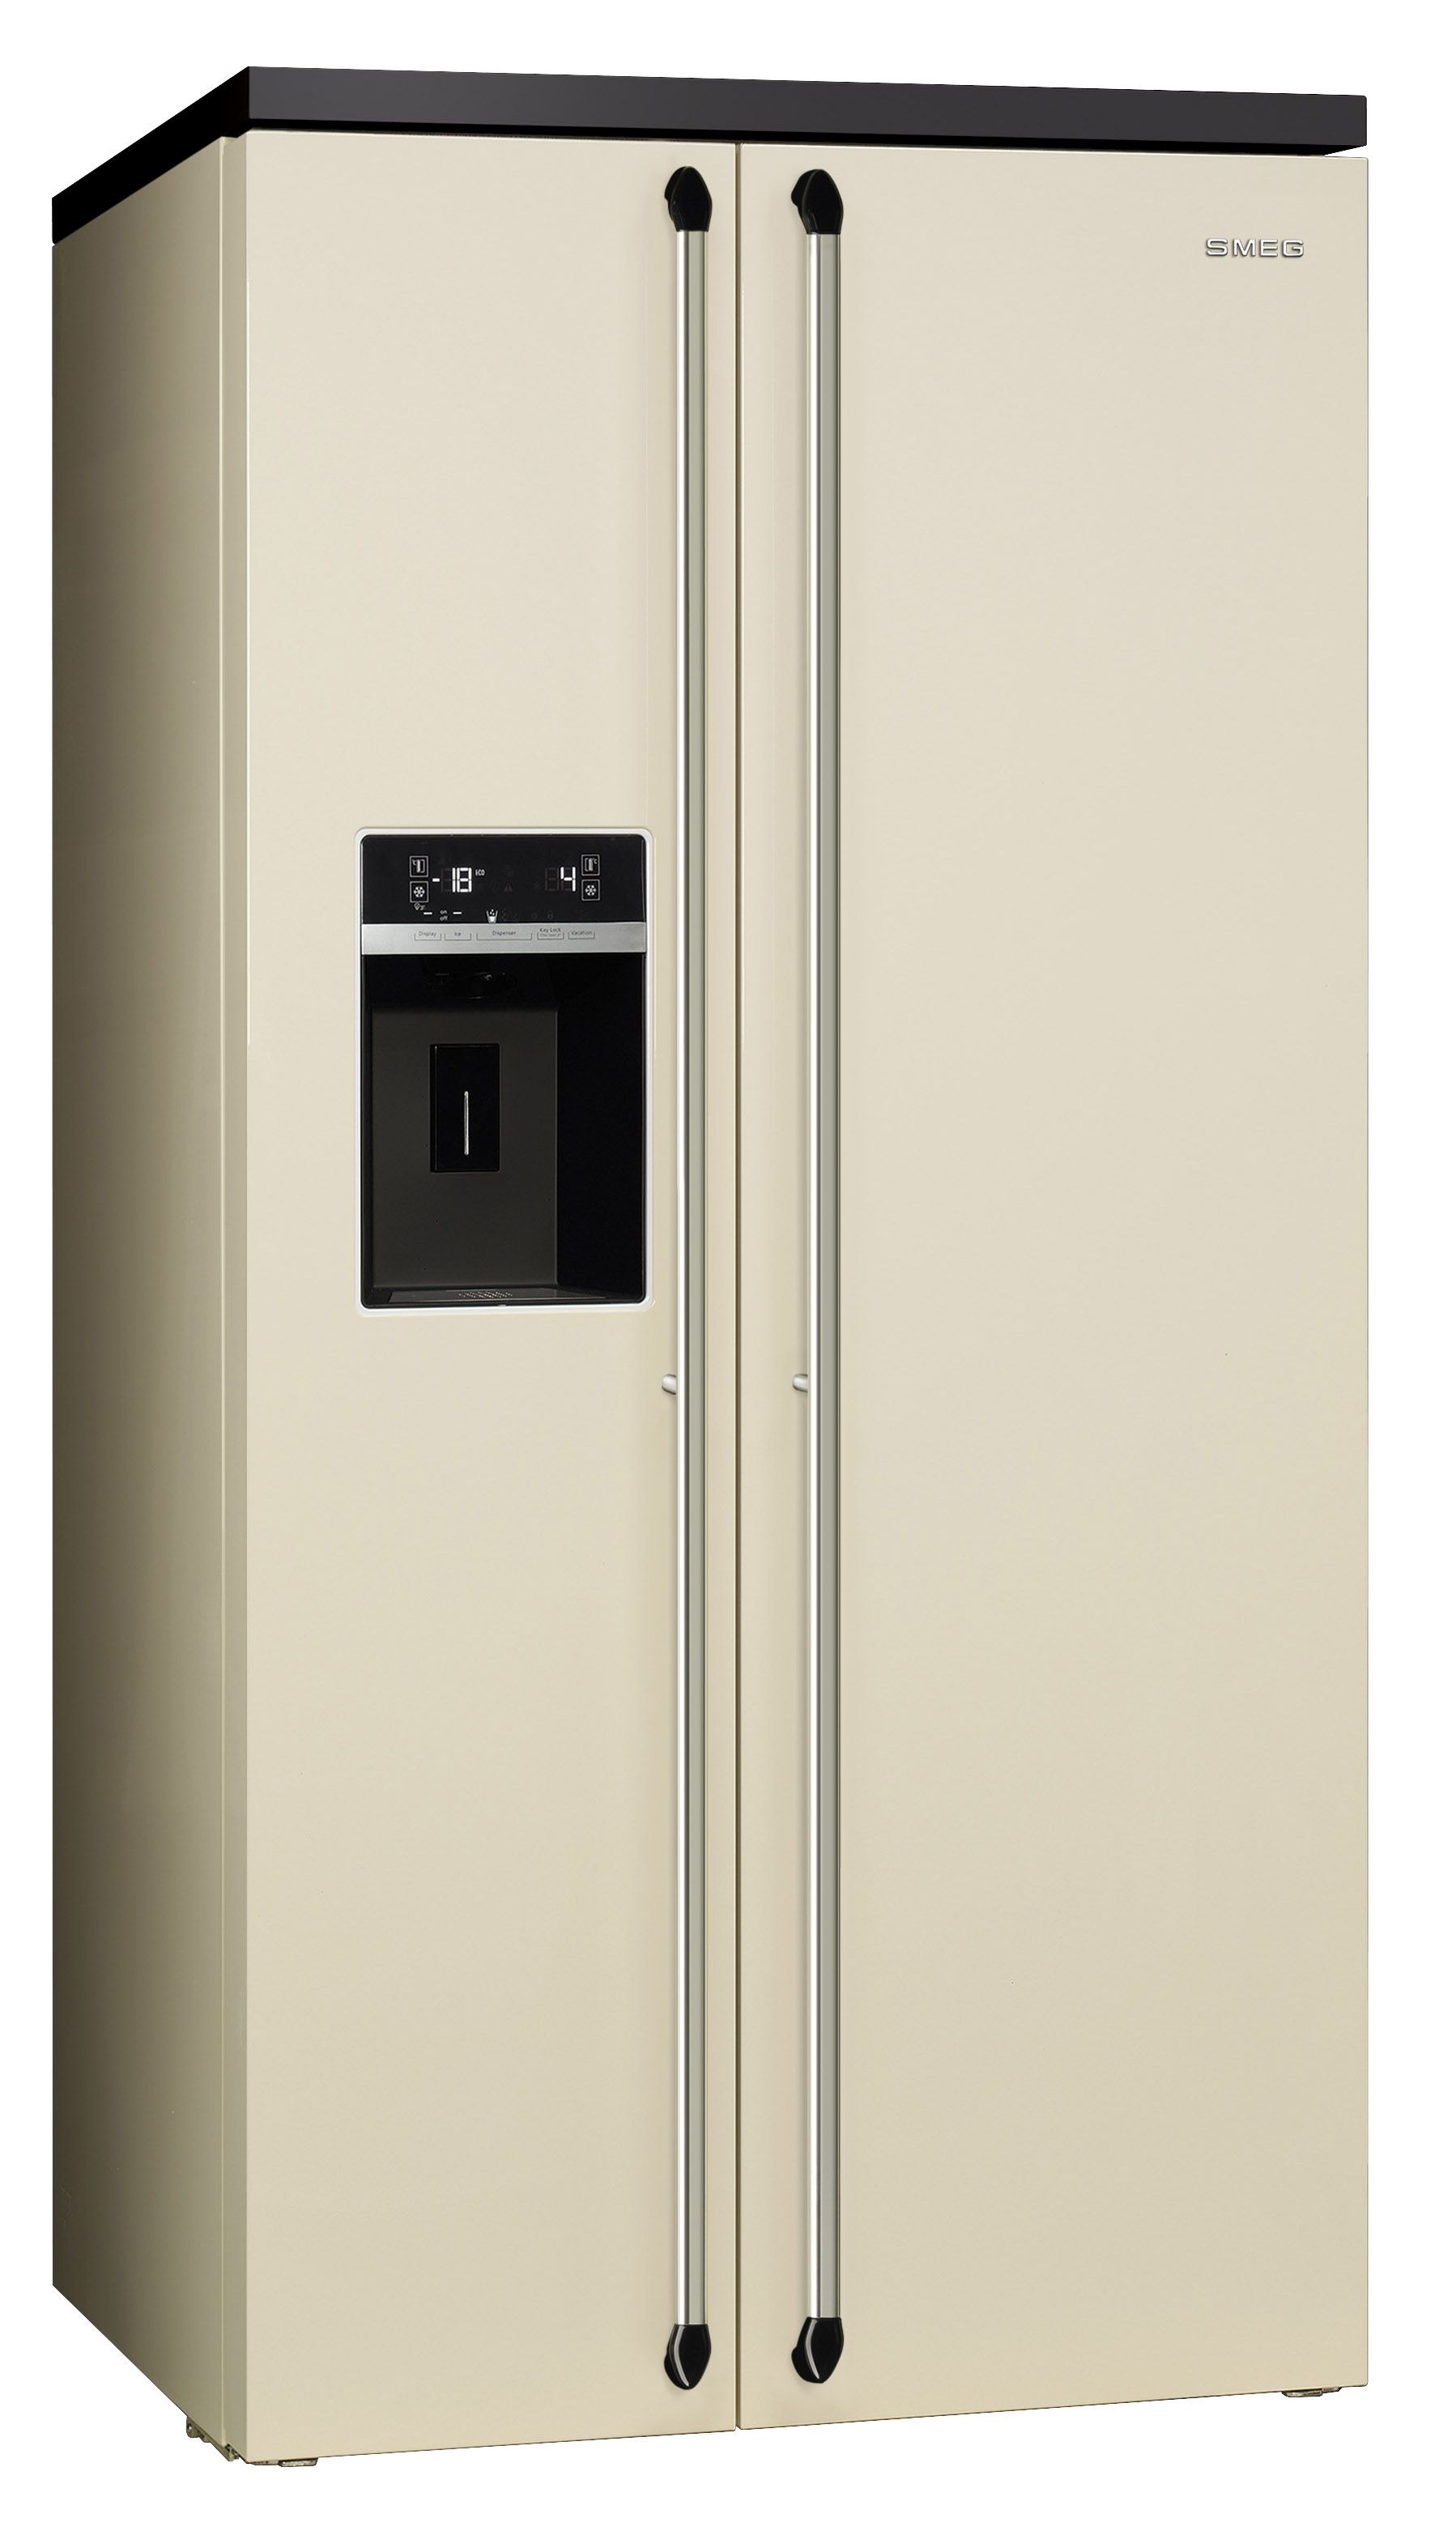 Smeg Uk Victoria American Style Side By Side Refrigerator Freezer